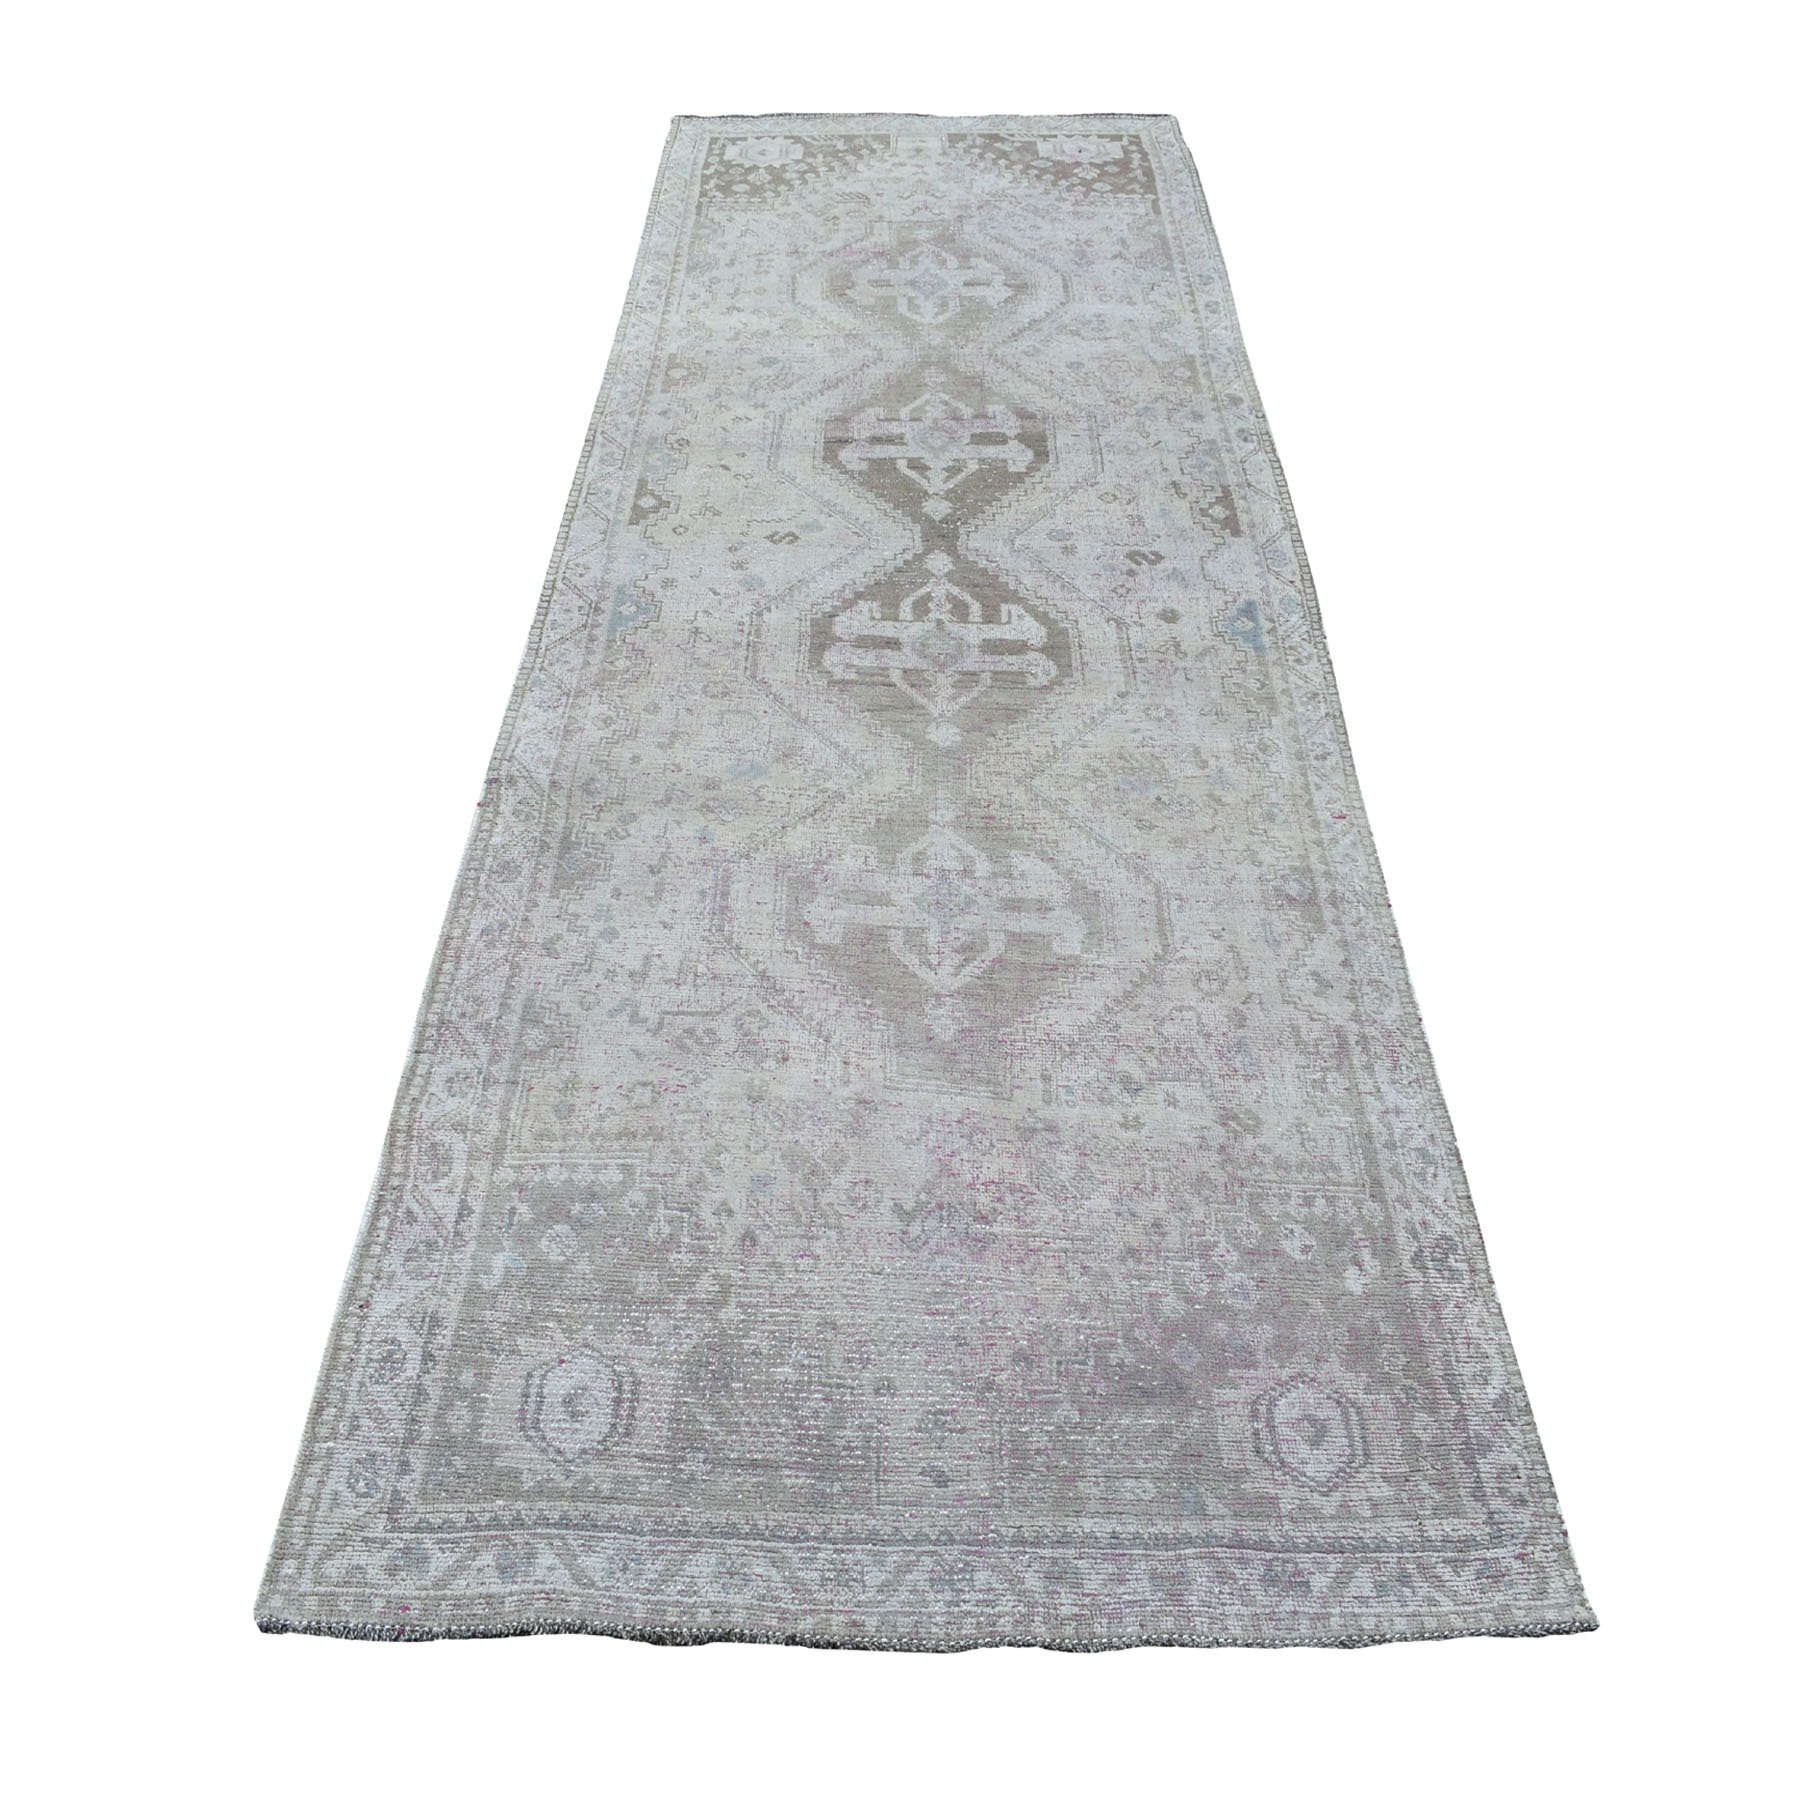 4'x11' Vintage And Worn Down Distressed Colors Persian Shiraz Wide Runner Hand Woven Bohemian Rug